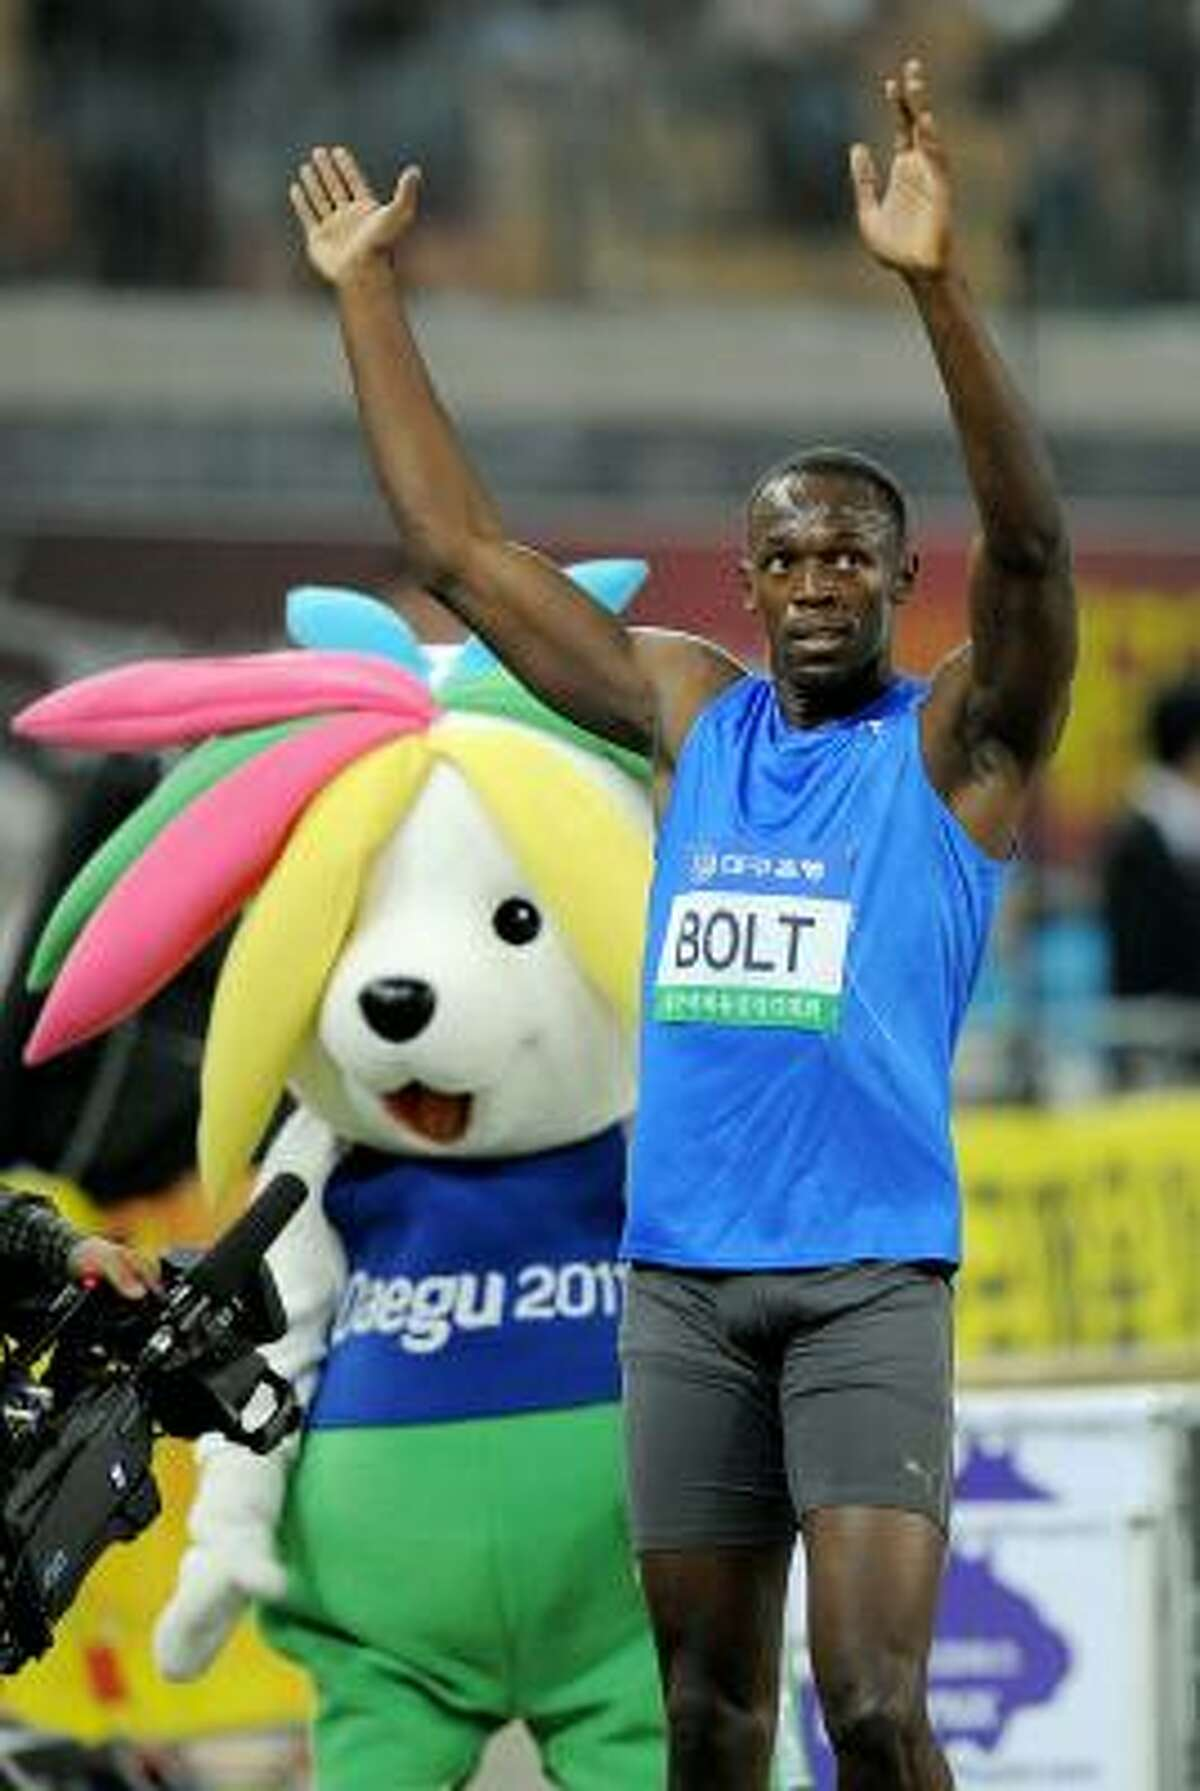 2010 DAEGU PRE-CHAMPIONSHIPS While Usain Bolt celebrates another 100-meters win at this track and field meet in Daegu, southeast of Seoul, Korea on May 19, the event's Sansabelt-golf-pants-wearing, gigantic-flower-in-its-hair mascot ruins the shot.